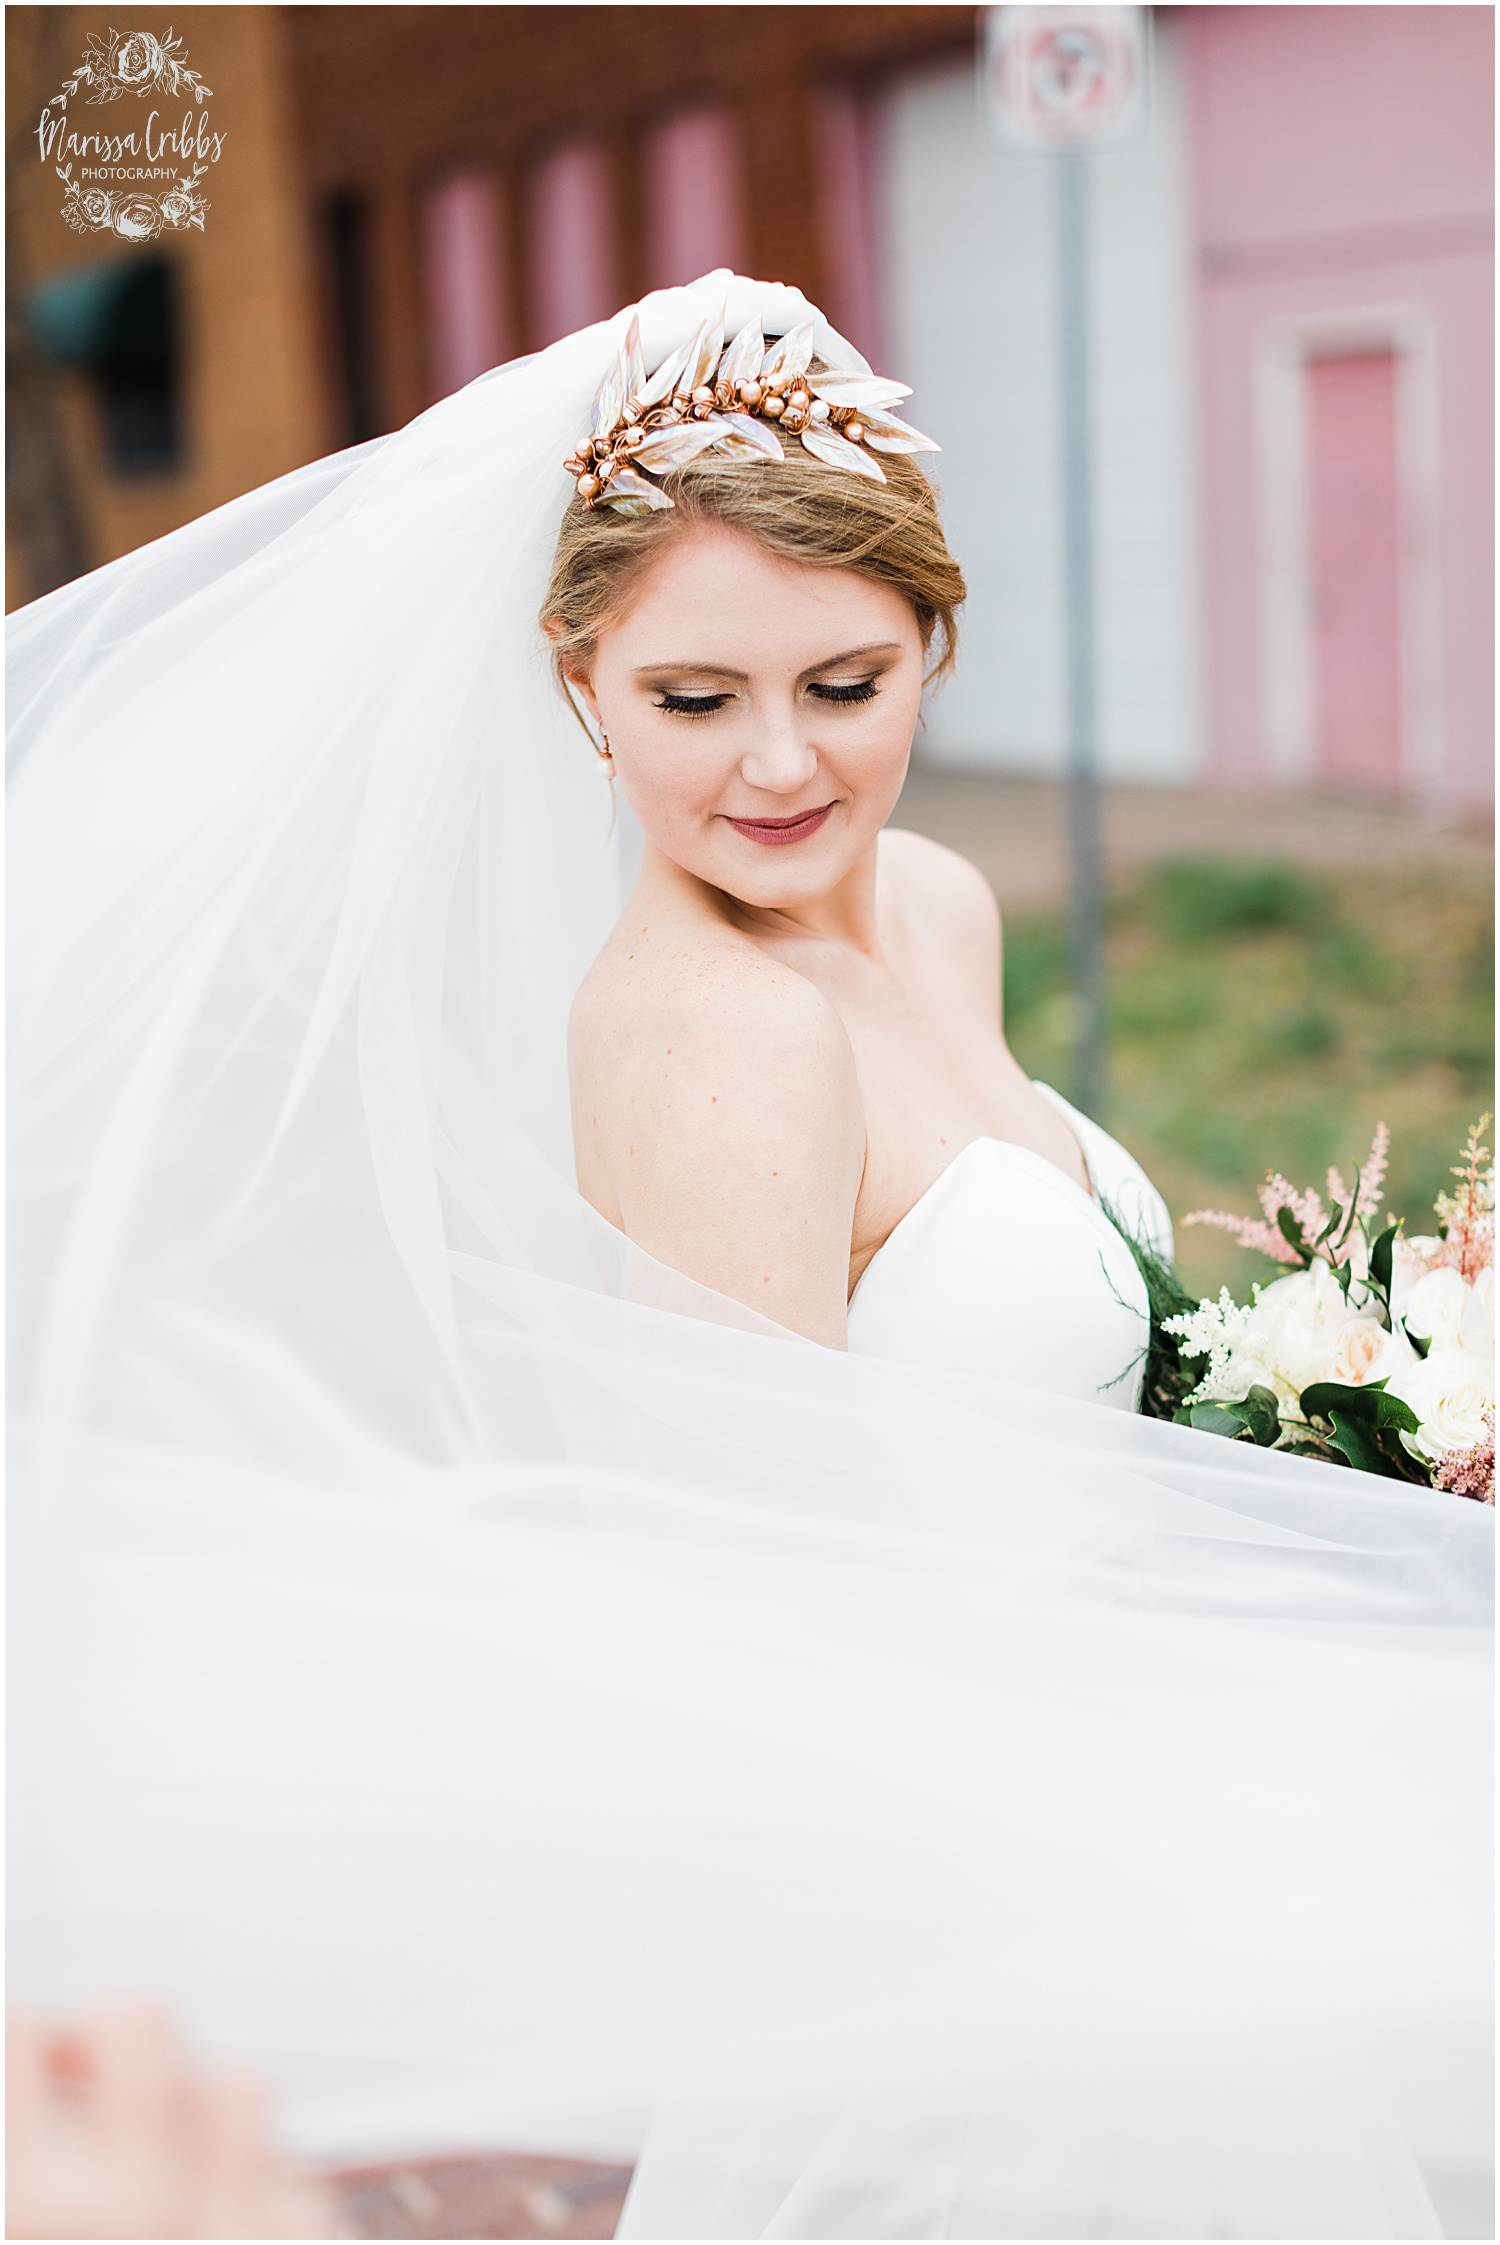 ABBY & CHARLIE WEDDING | THE HUDSON EVENT SPACE WEDDING | MARISSA CRIBBS PHOTOGRAPHY_7536.jpg